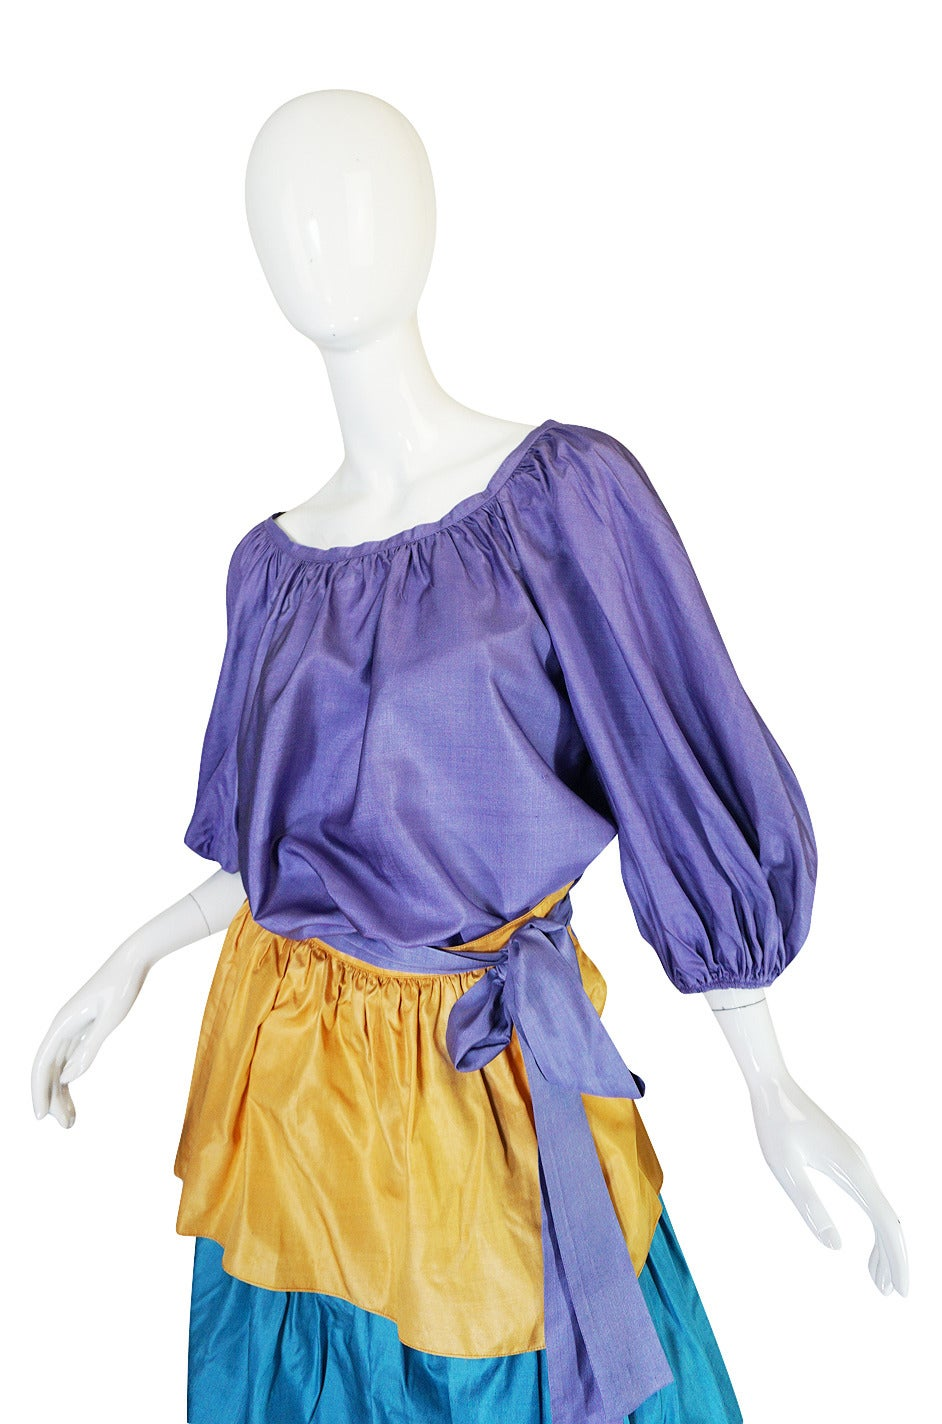 1970s Yves Saint Laurent Peasant Ruffle Skirt & Top Set In Excellent Condition For Sale In Toronto, ON